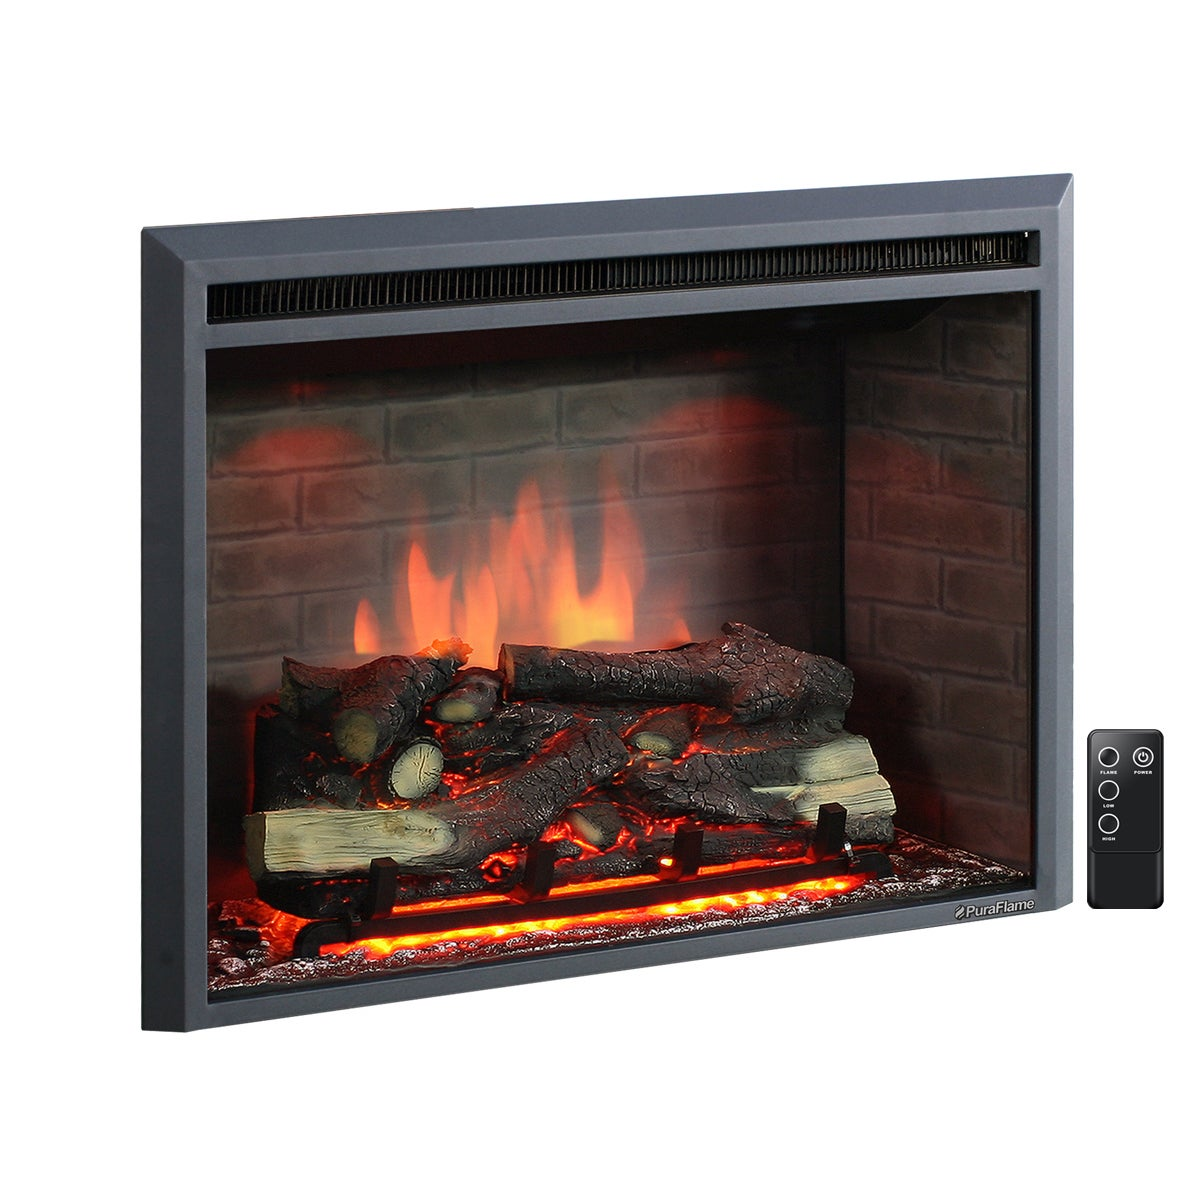 Puraflame 33 Inch Western Electric Fireplace Insert With Remote Control On Free Shipping Today 13951586